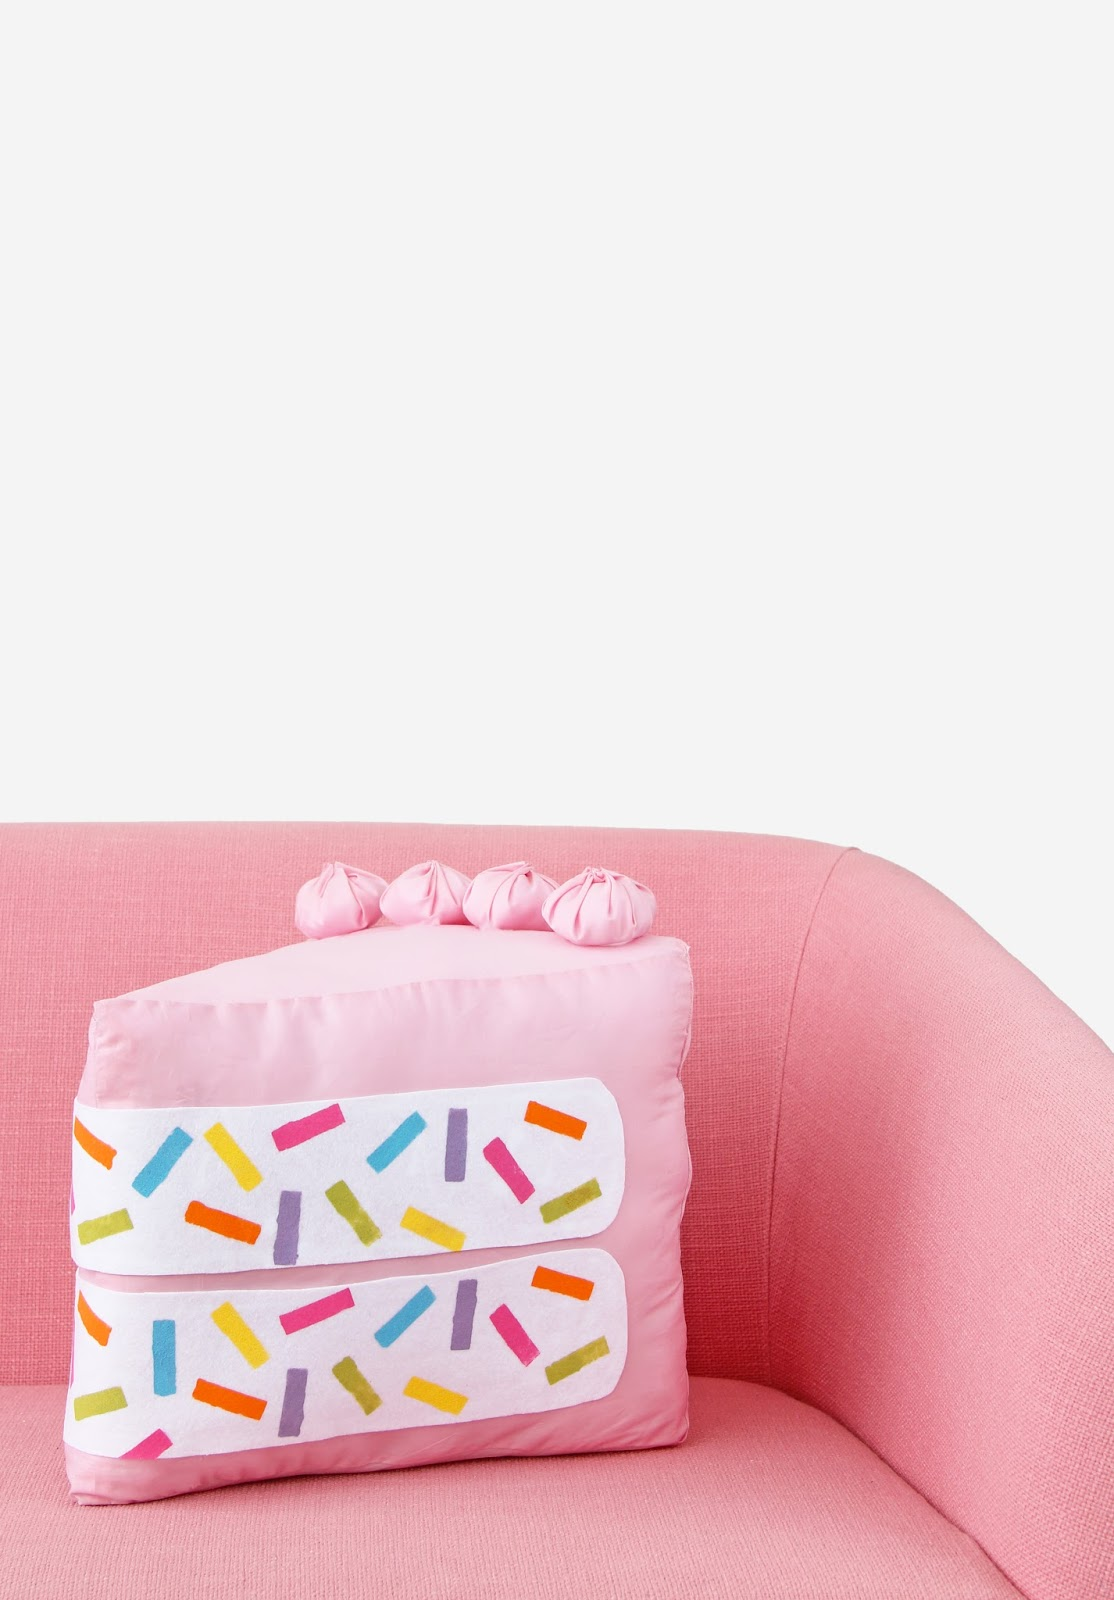 DIY no sew funfetti cake slice pillow (via www.awwsam.com)